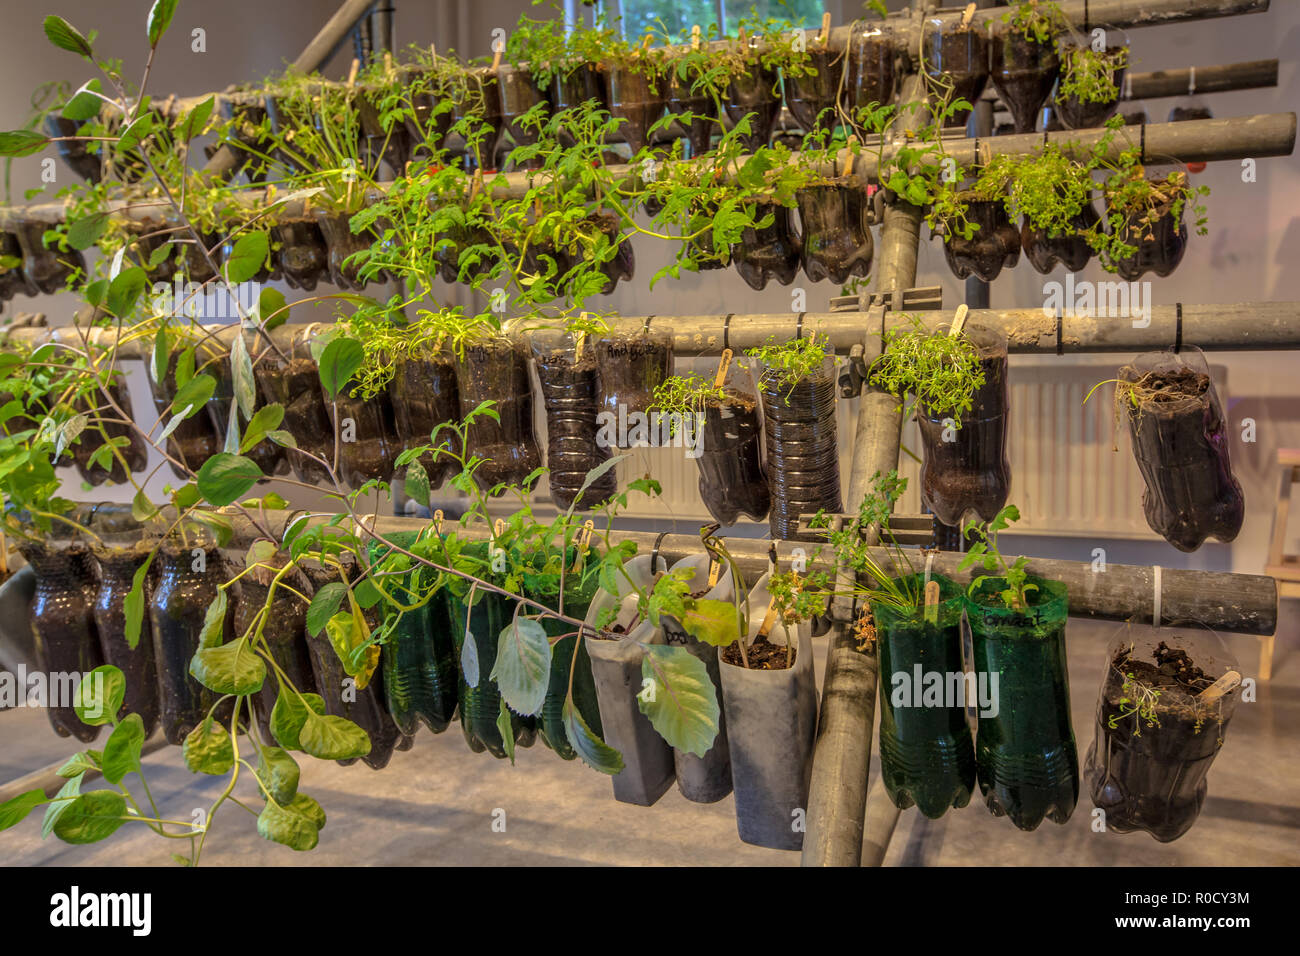 Organic Hanging baskets vegetable garden made of plastic bottles inside a home - Stock Image